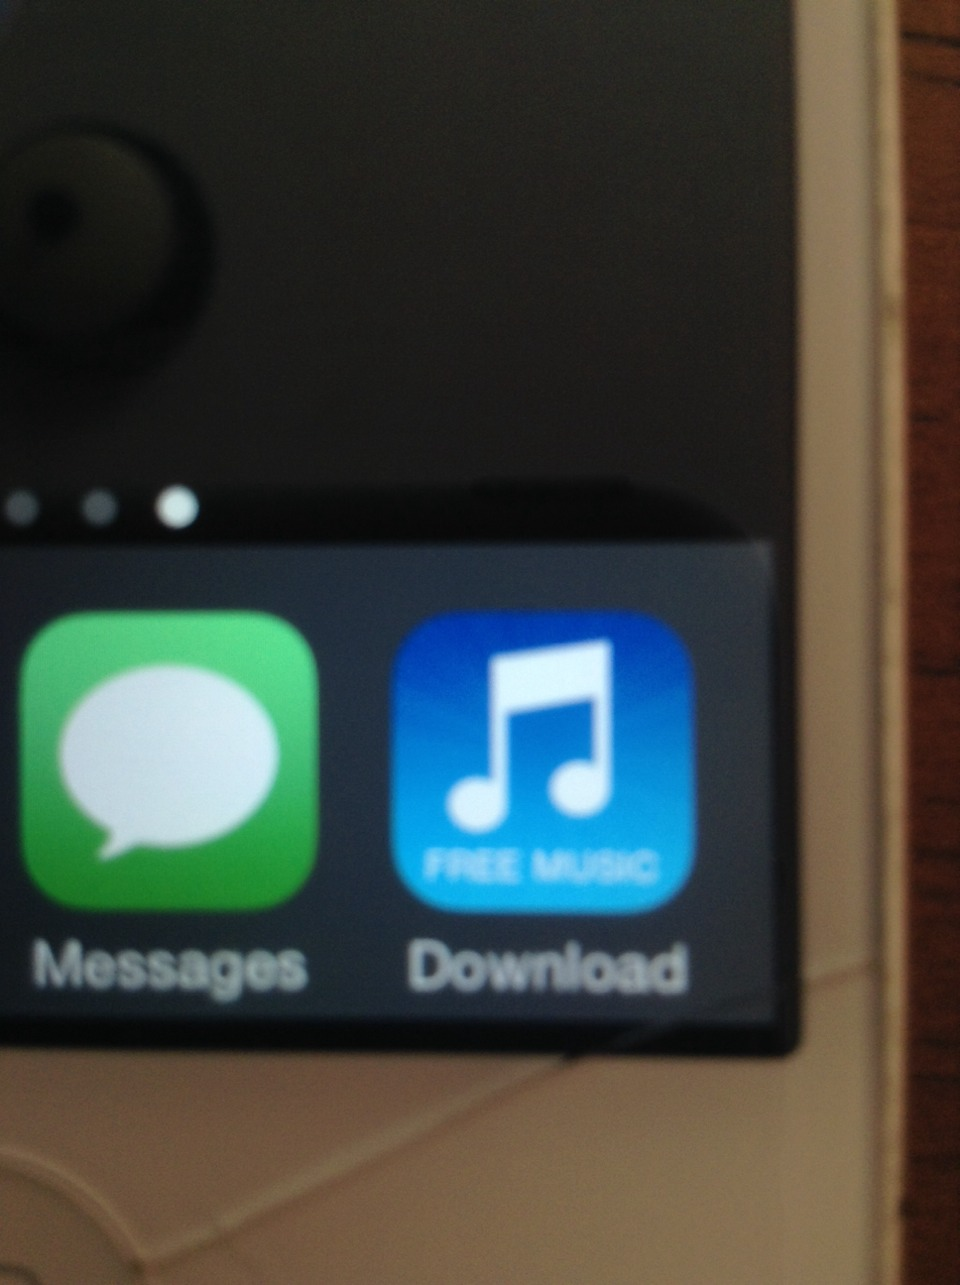 Get the app called Free Music Downloader which is blue and will look like the one in the picture.